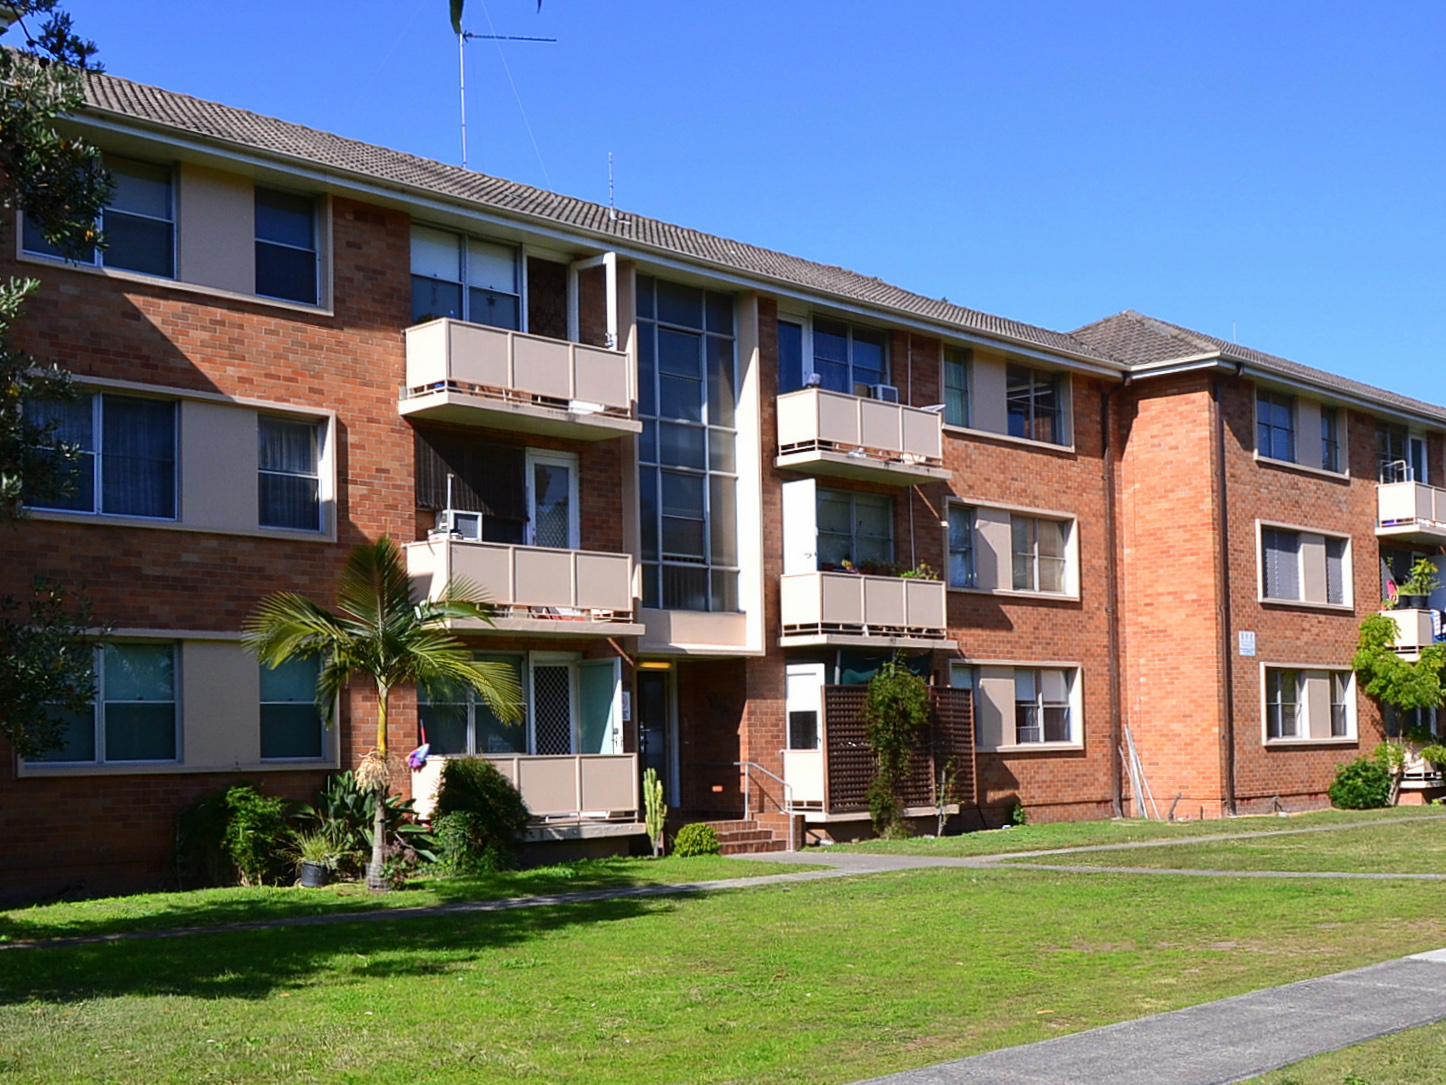 Public housing is in crisis across Australia. Public waiting list times continue to grow longer and longer as demand for public housing has risen well beyond capacity, with the situation only getting worse by the year. Image: rent.com.au